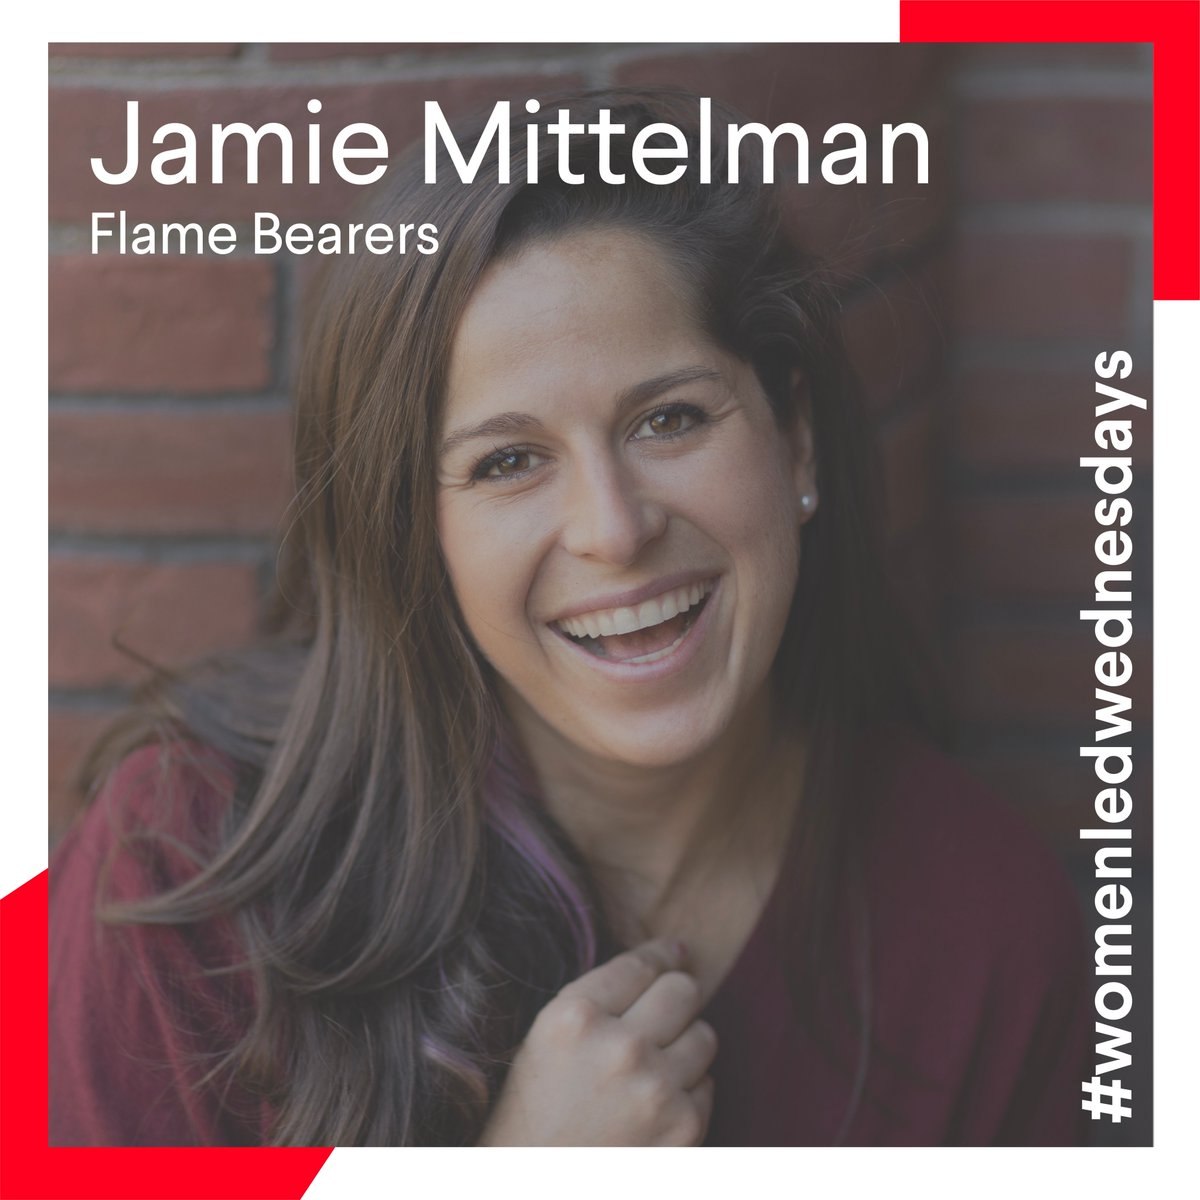 Meet @JamieMittelman (@Kennedy_School 21), founder of the podcast #FlameBearers, which brings 2021 women Olympians' and Paralympians' experiences to life and explores the gendered complexities of sport. Read our Q&A with Jamie: innovationlabs.harvard.edu/about/news/har… #WomenLedWednesdays